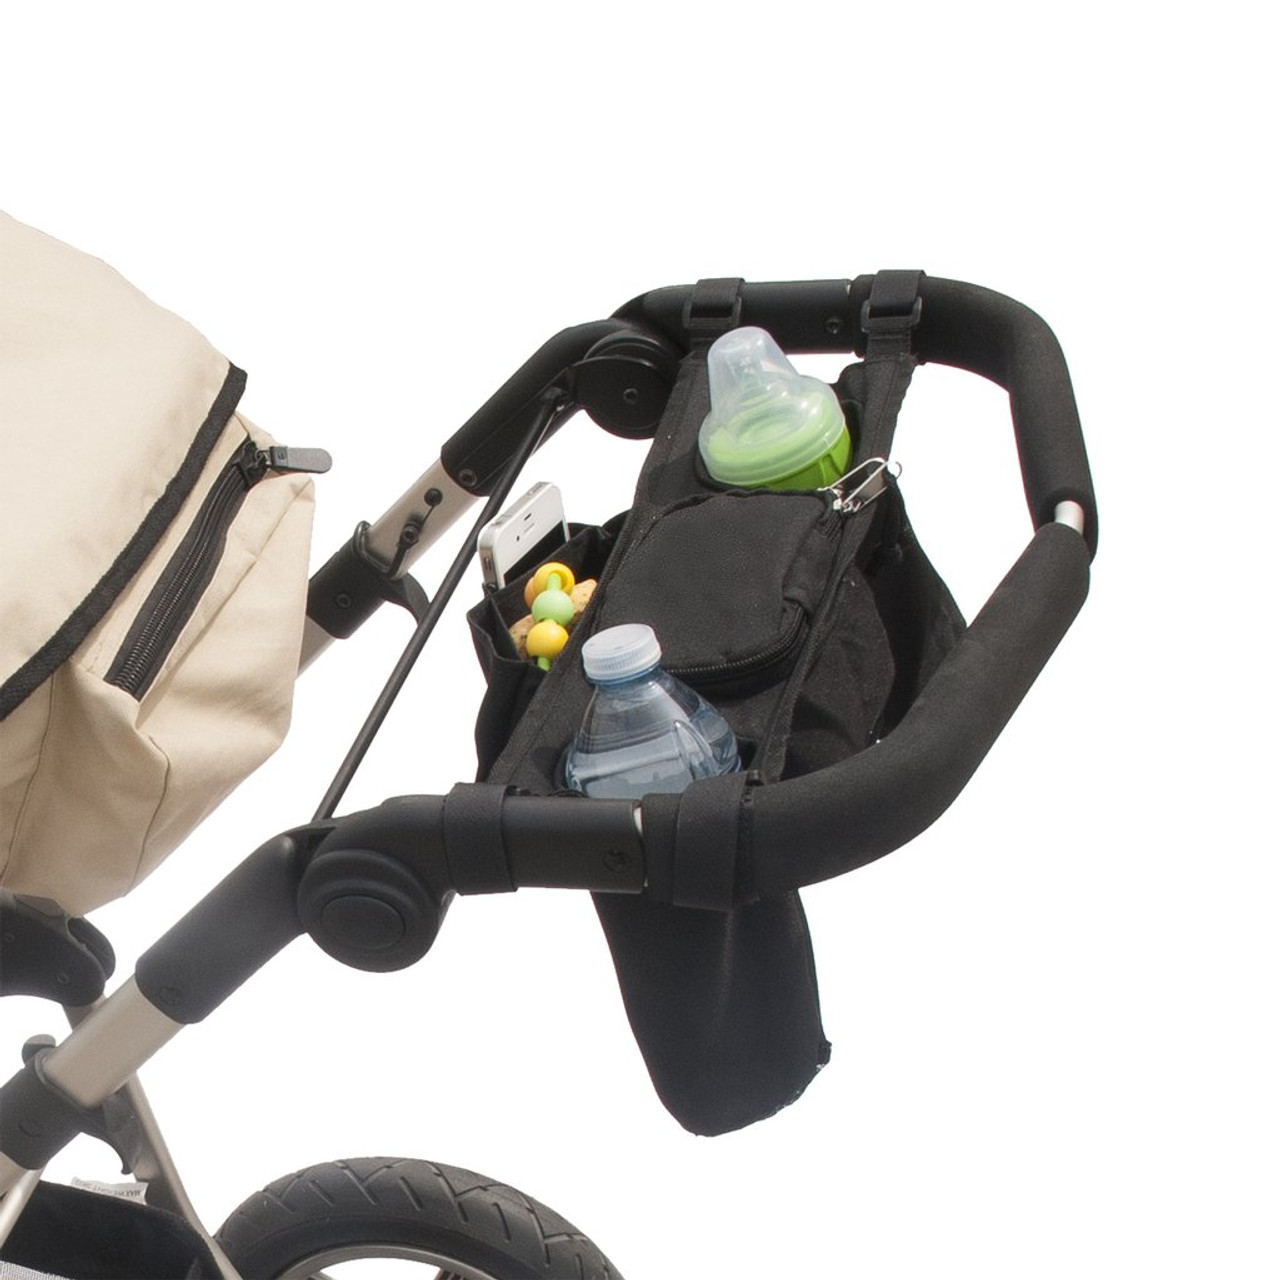 Jolly Jumper Stroller Caddy accessory that attaches to handles and most bars